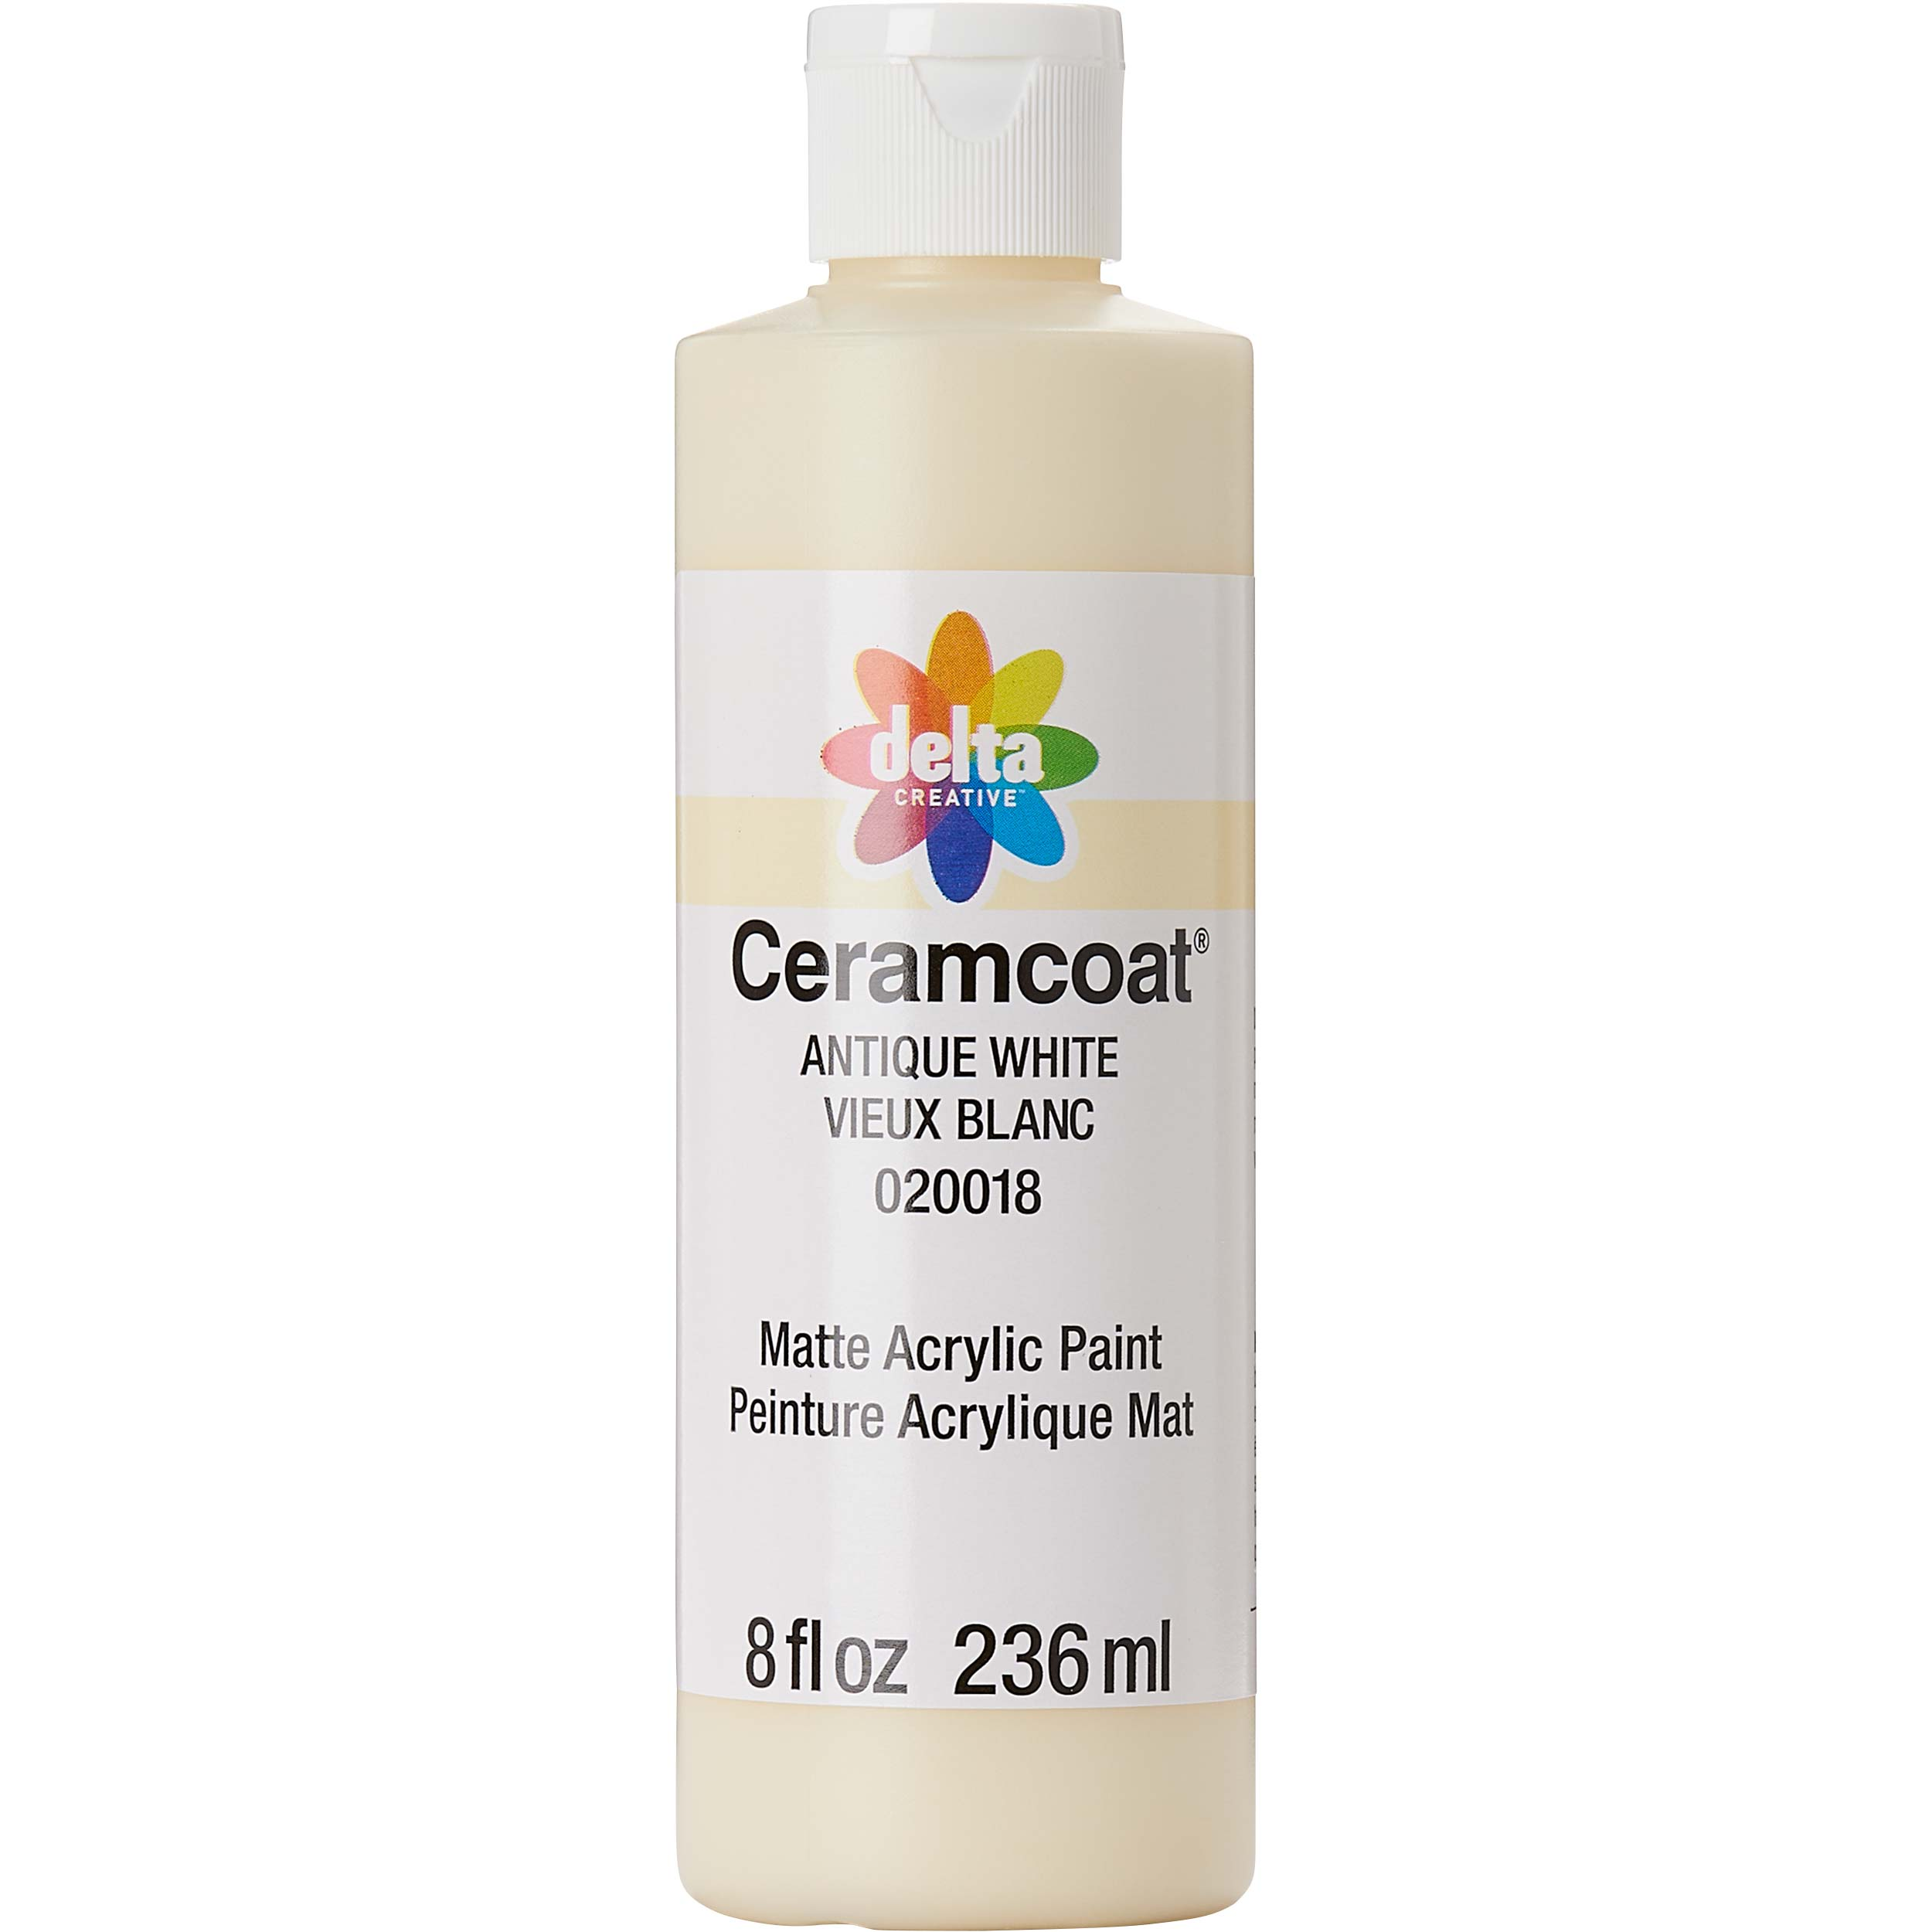 Delta Ceramcoat ® Acrylic Paint - Antique White, 8 oz. - 020010802W